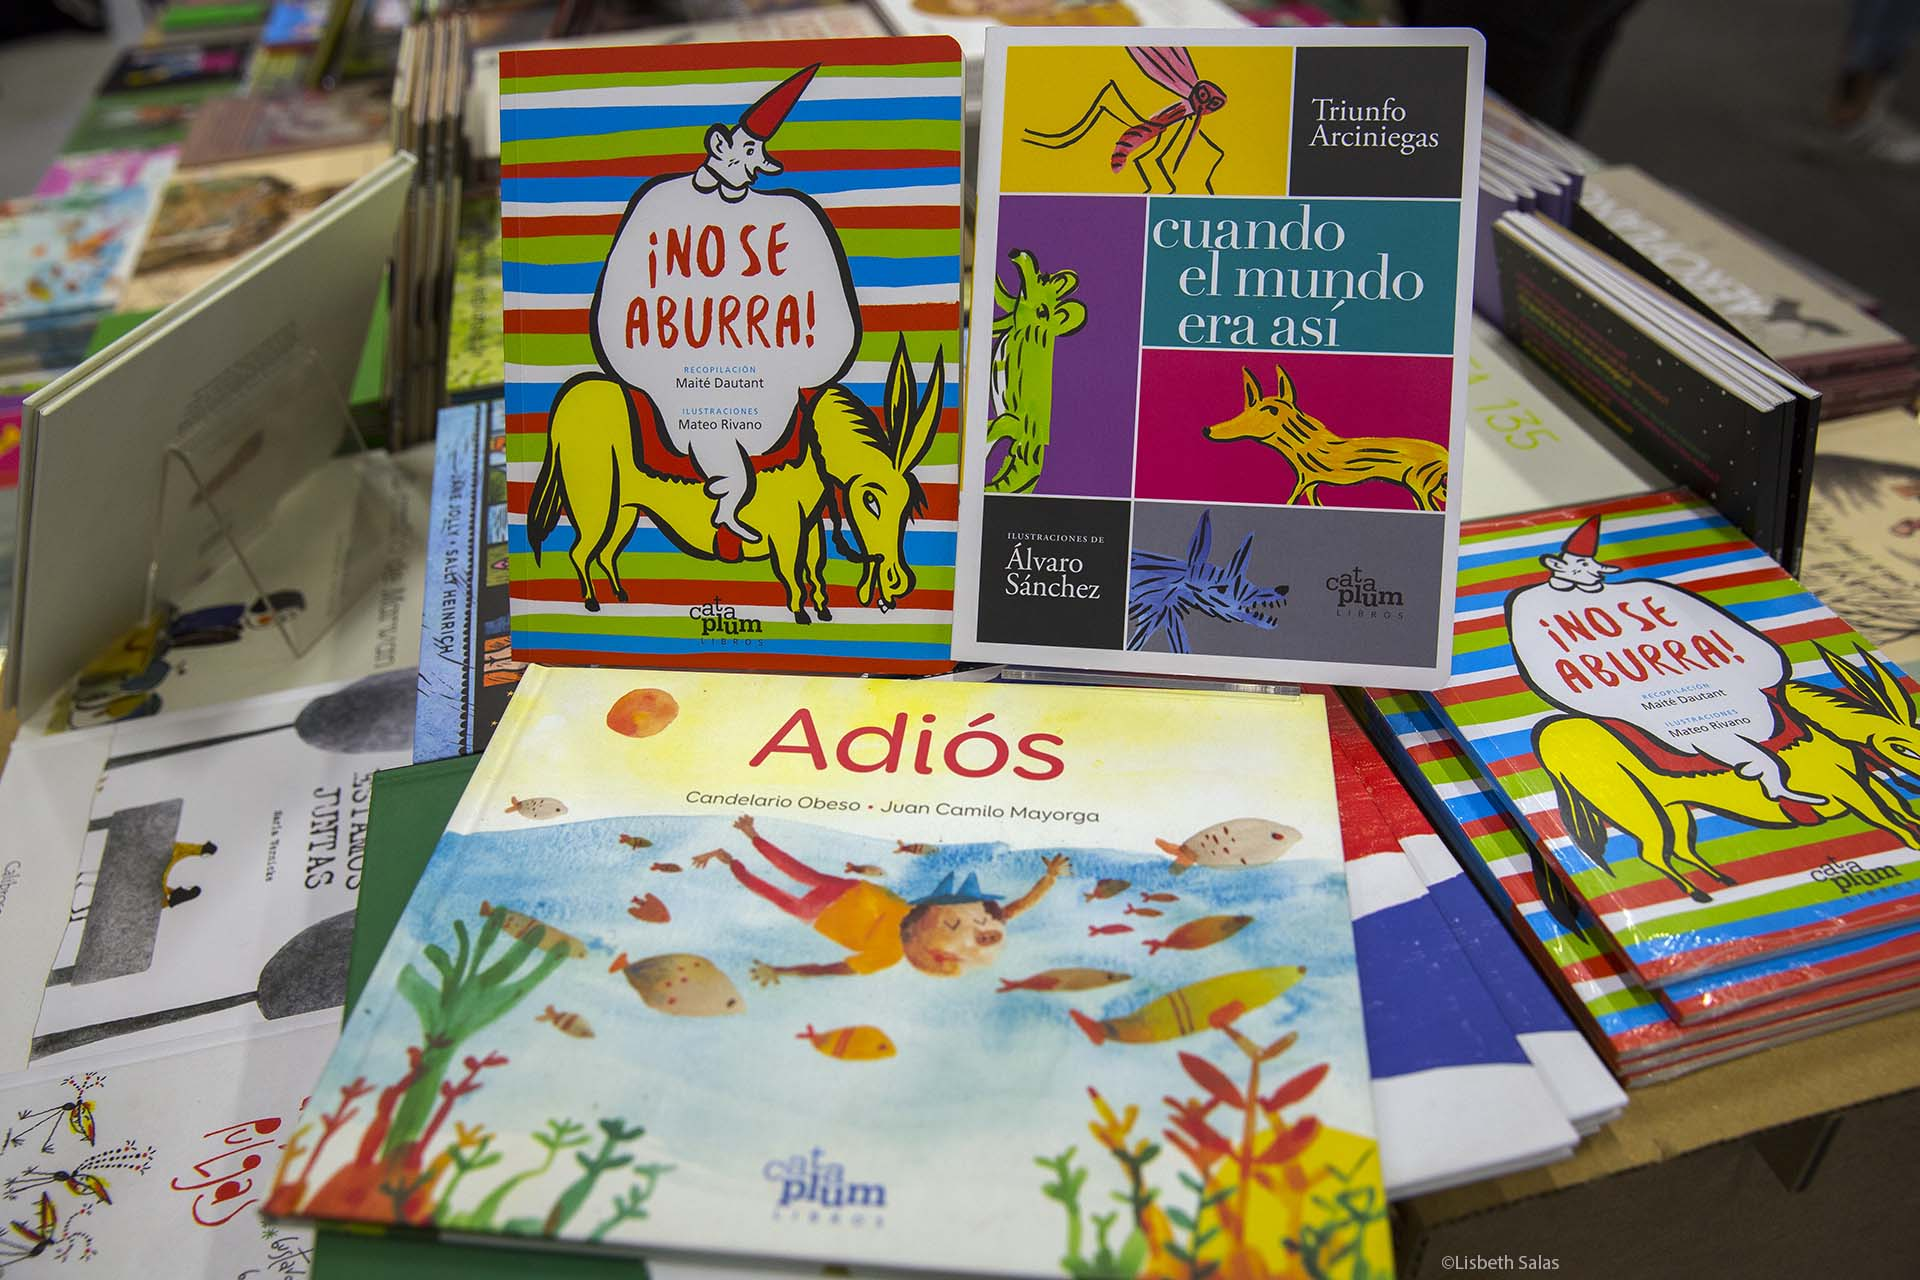 La editorial Cataplum en la FILBo 2017.